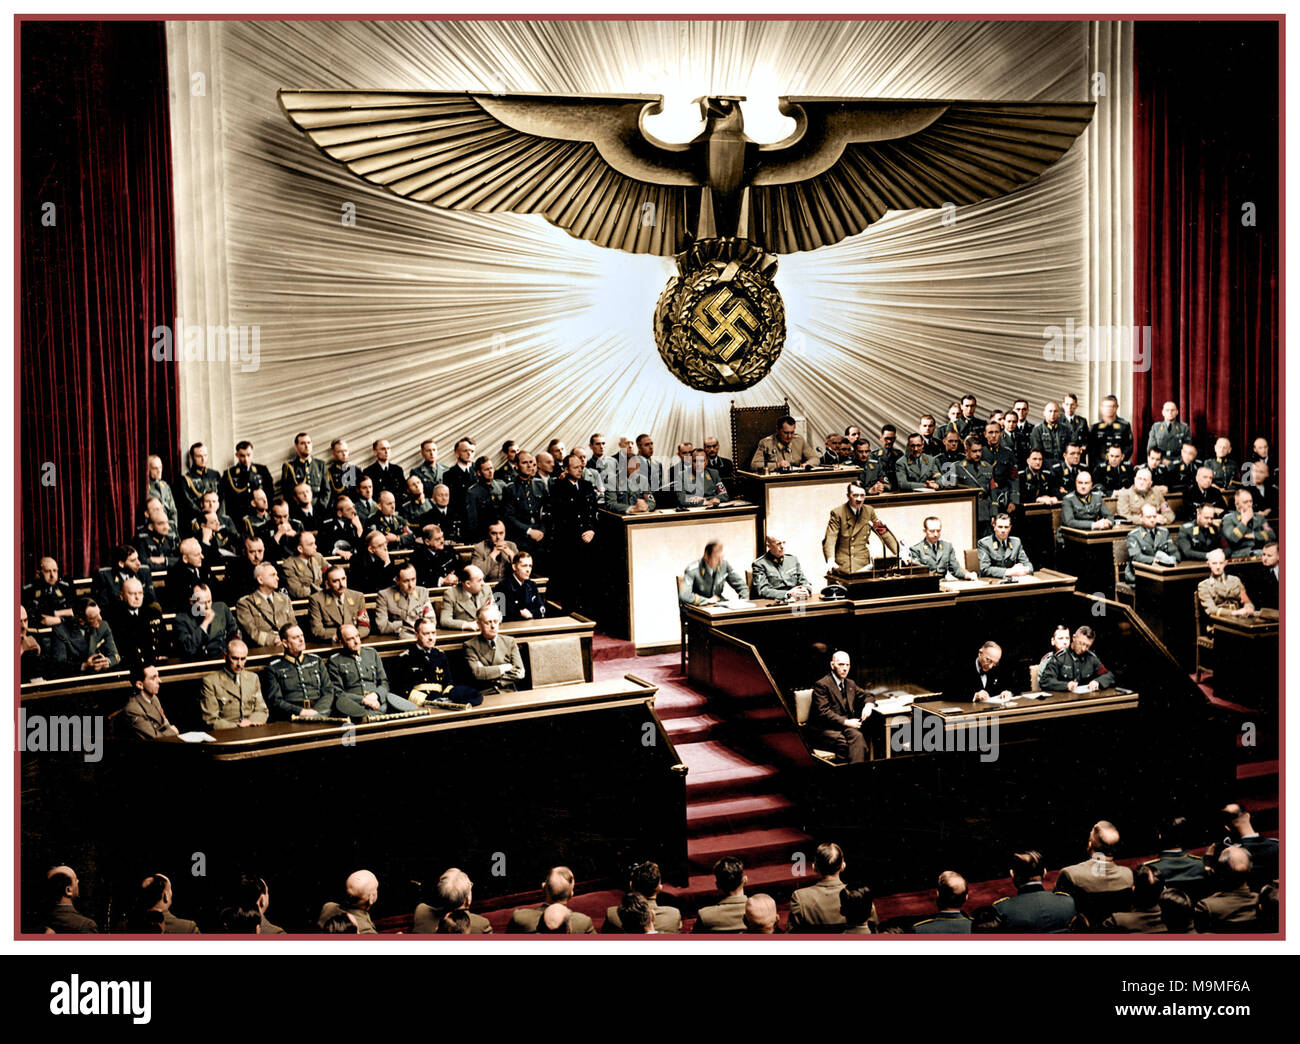 1940's Vintage WW2 Adolf Hitler delivers a speech at the Kroll Opera House to the men of the Reichstag on the subject of Roosevelt and the war in the Pacific, declaring war on the United States. Berlin 1941 - Stock Image